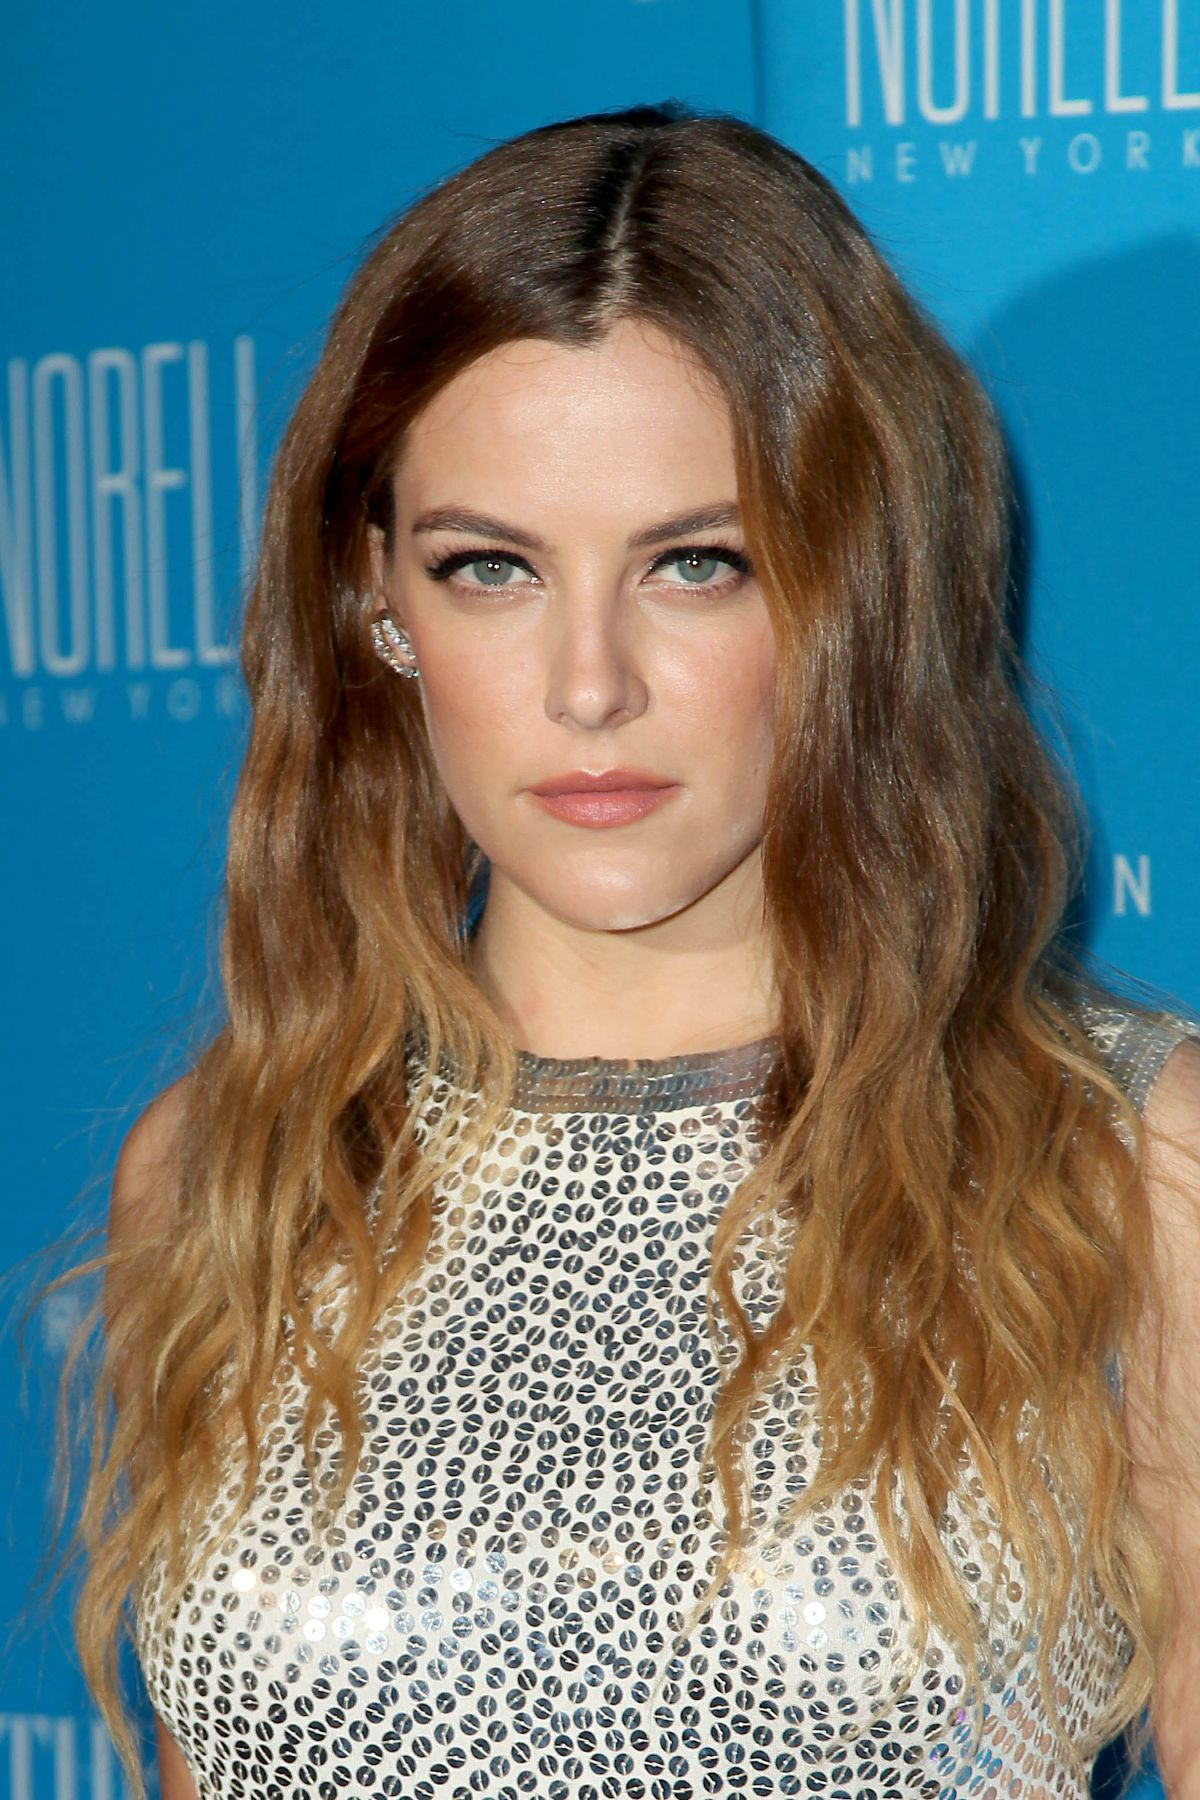 Riley Keough Archives - HawtCelebs - HawtCelebs